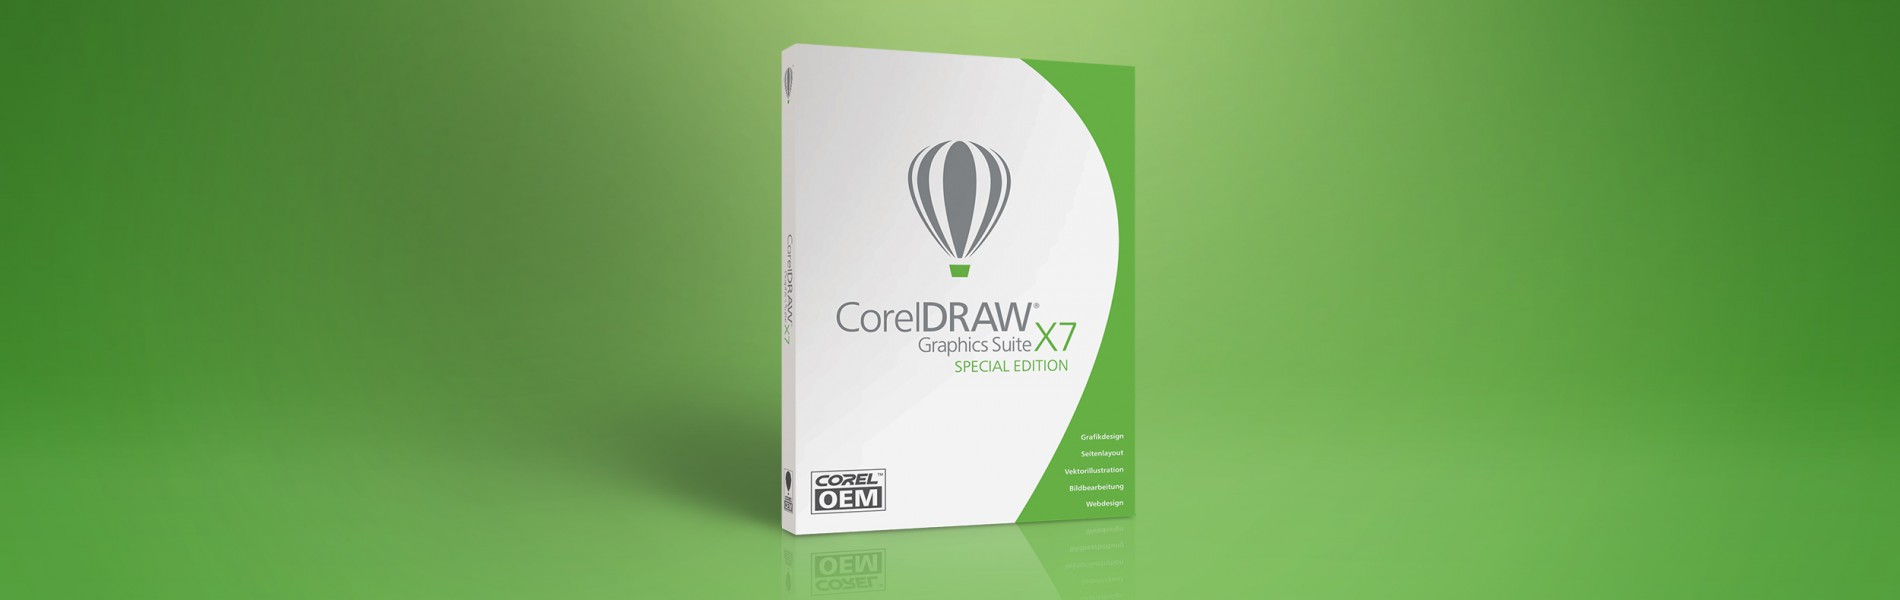 CorelDRAW® Graphics Suite X7 Special Edition